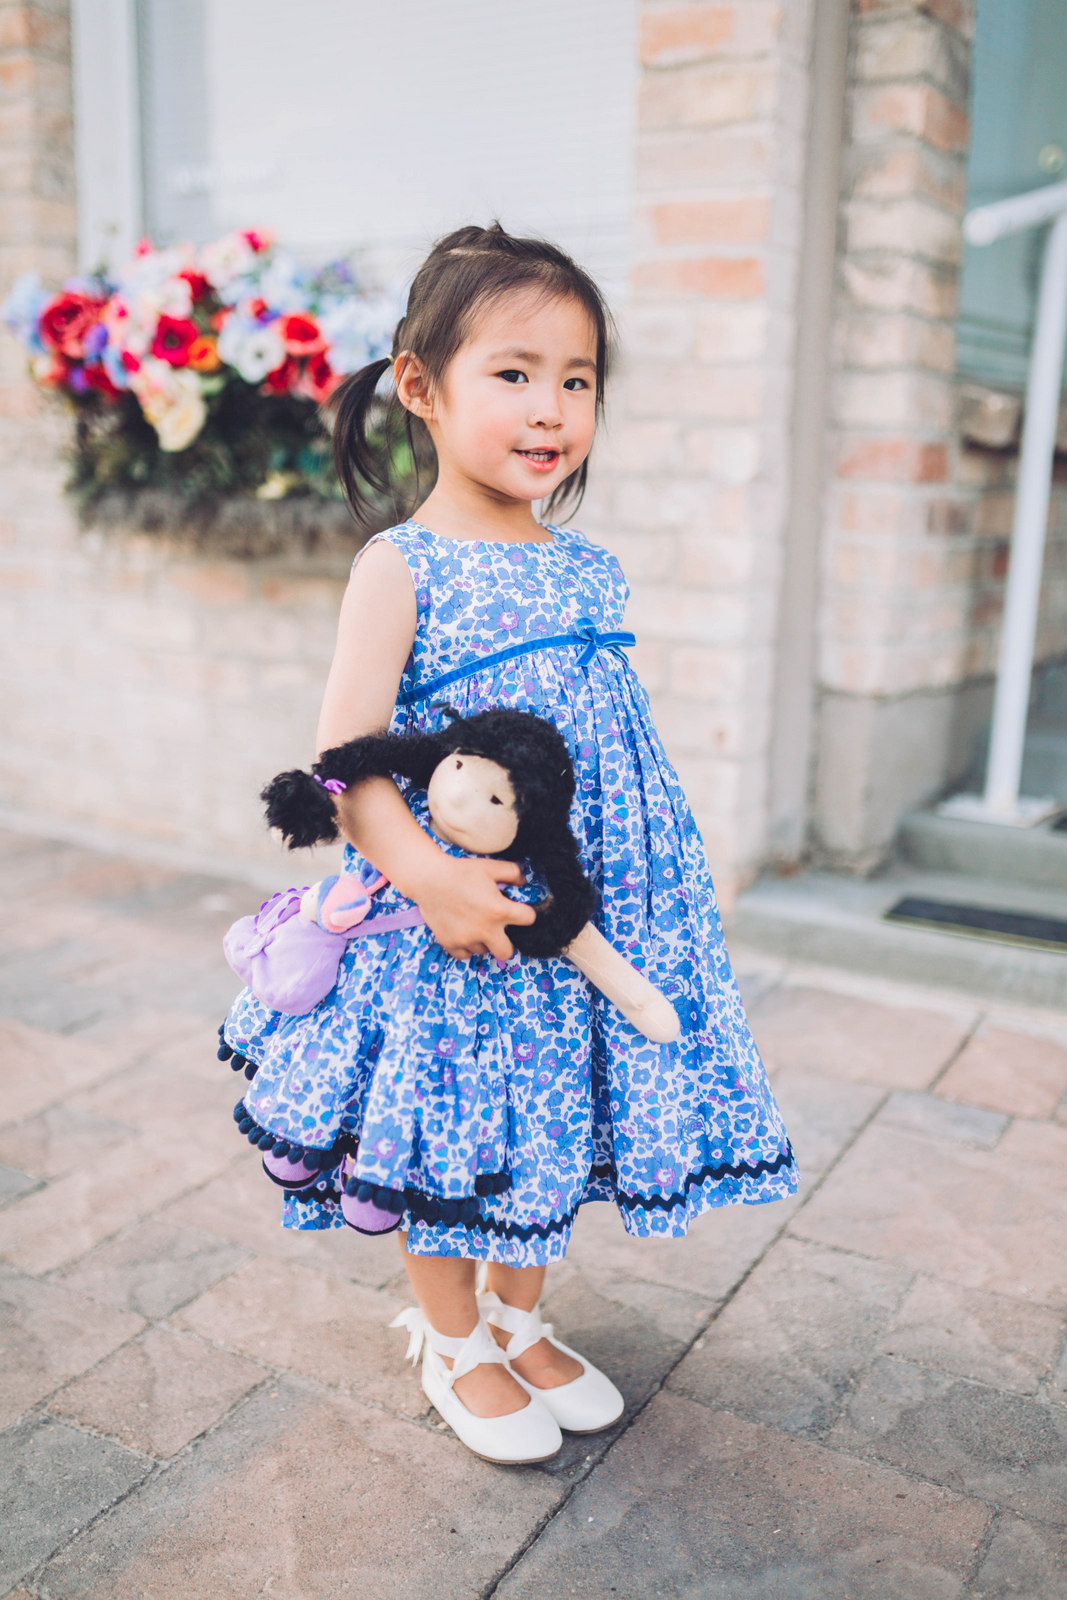 Matching Girl and Doll Outfits by Utah blogger SandyALaMode